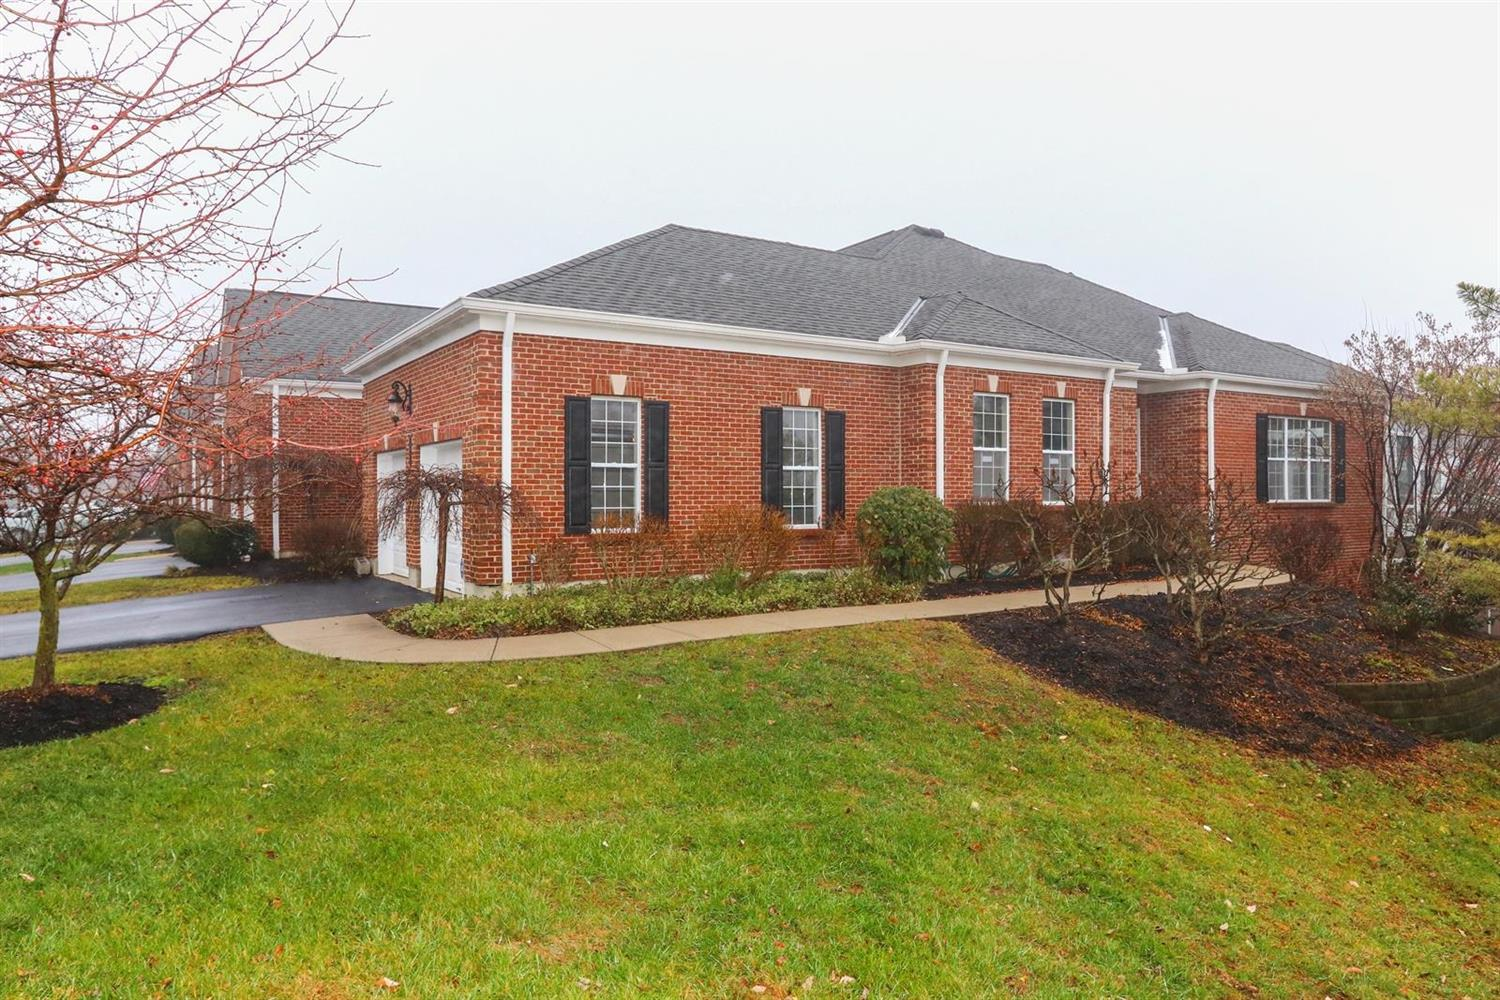 Property for sale at 8045 Paddington Lane, Sycamore Twp,  OH 45249